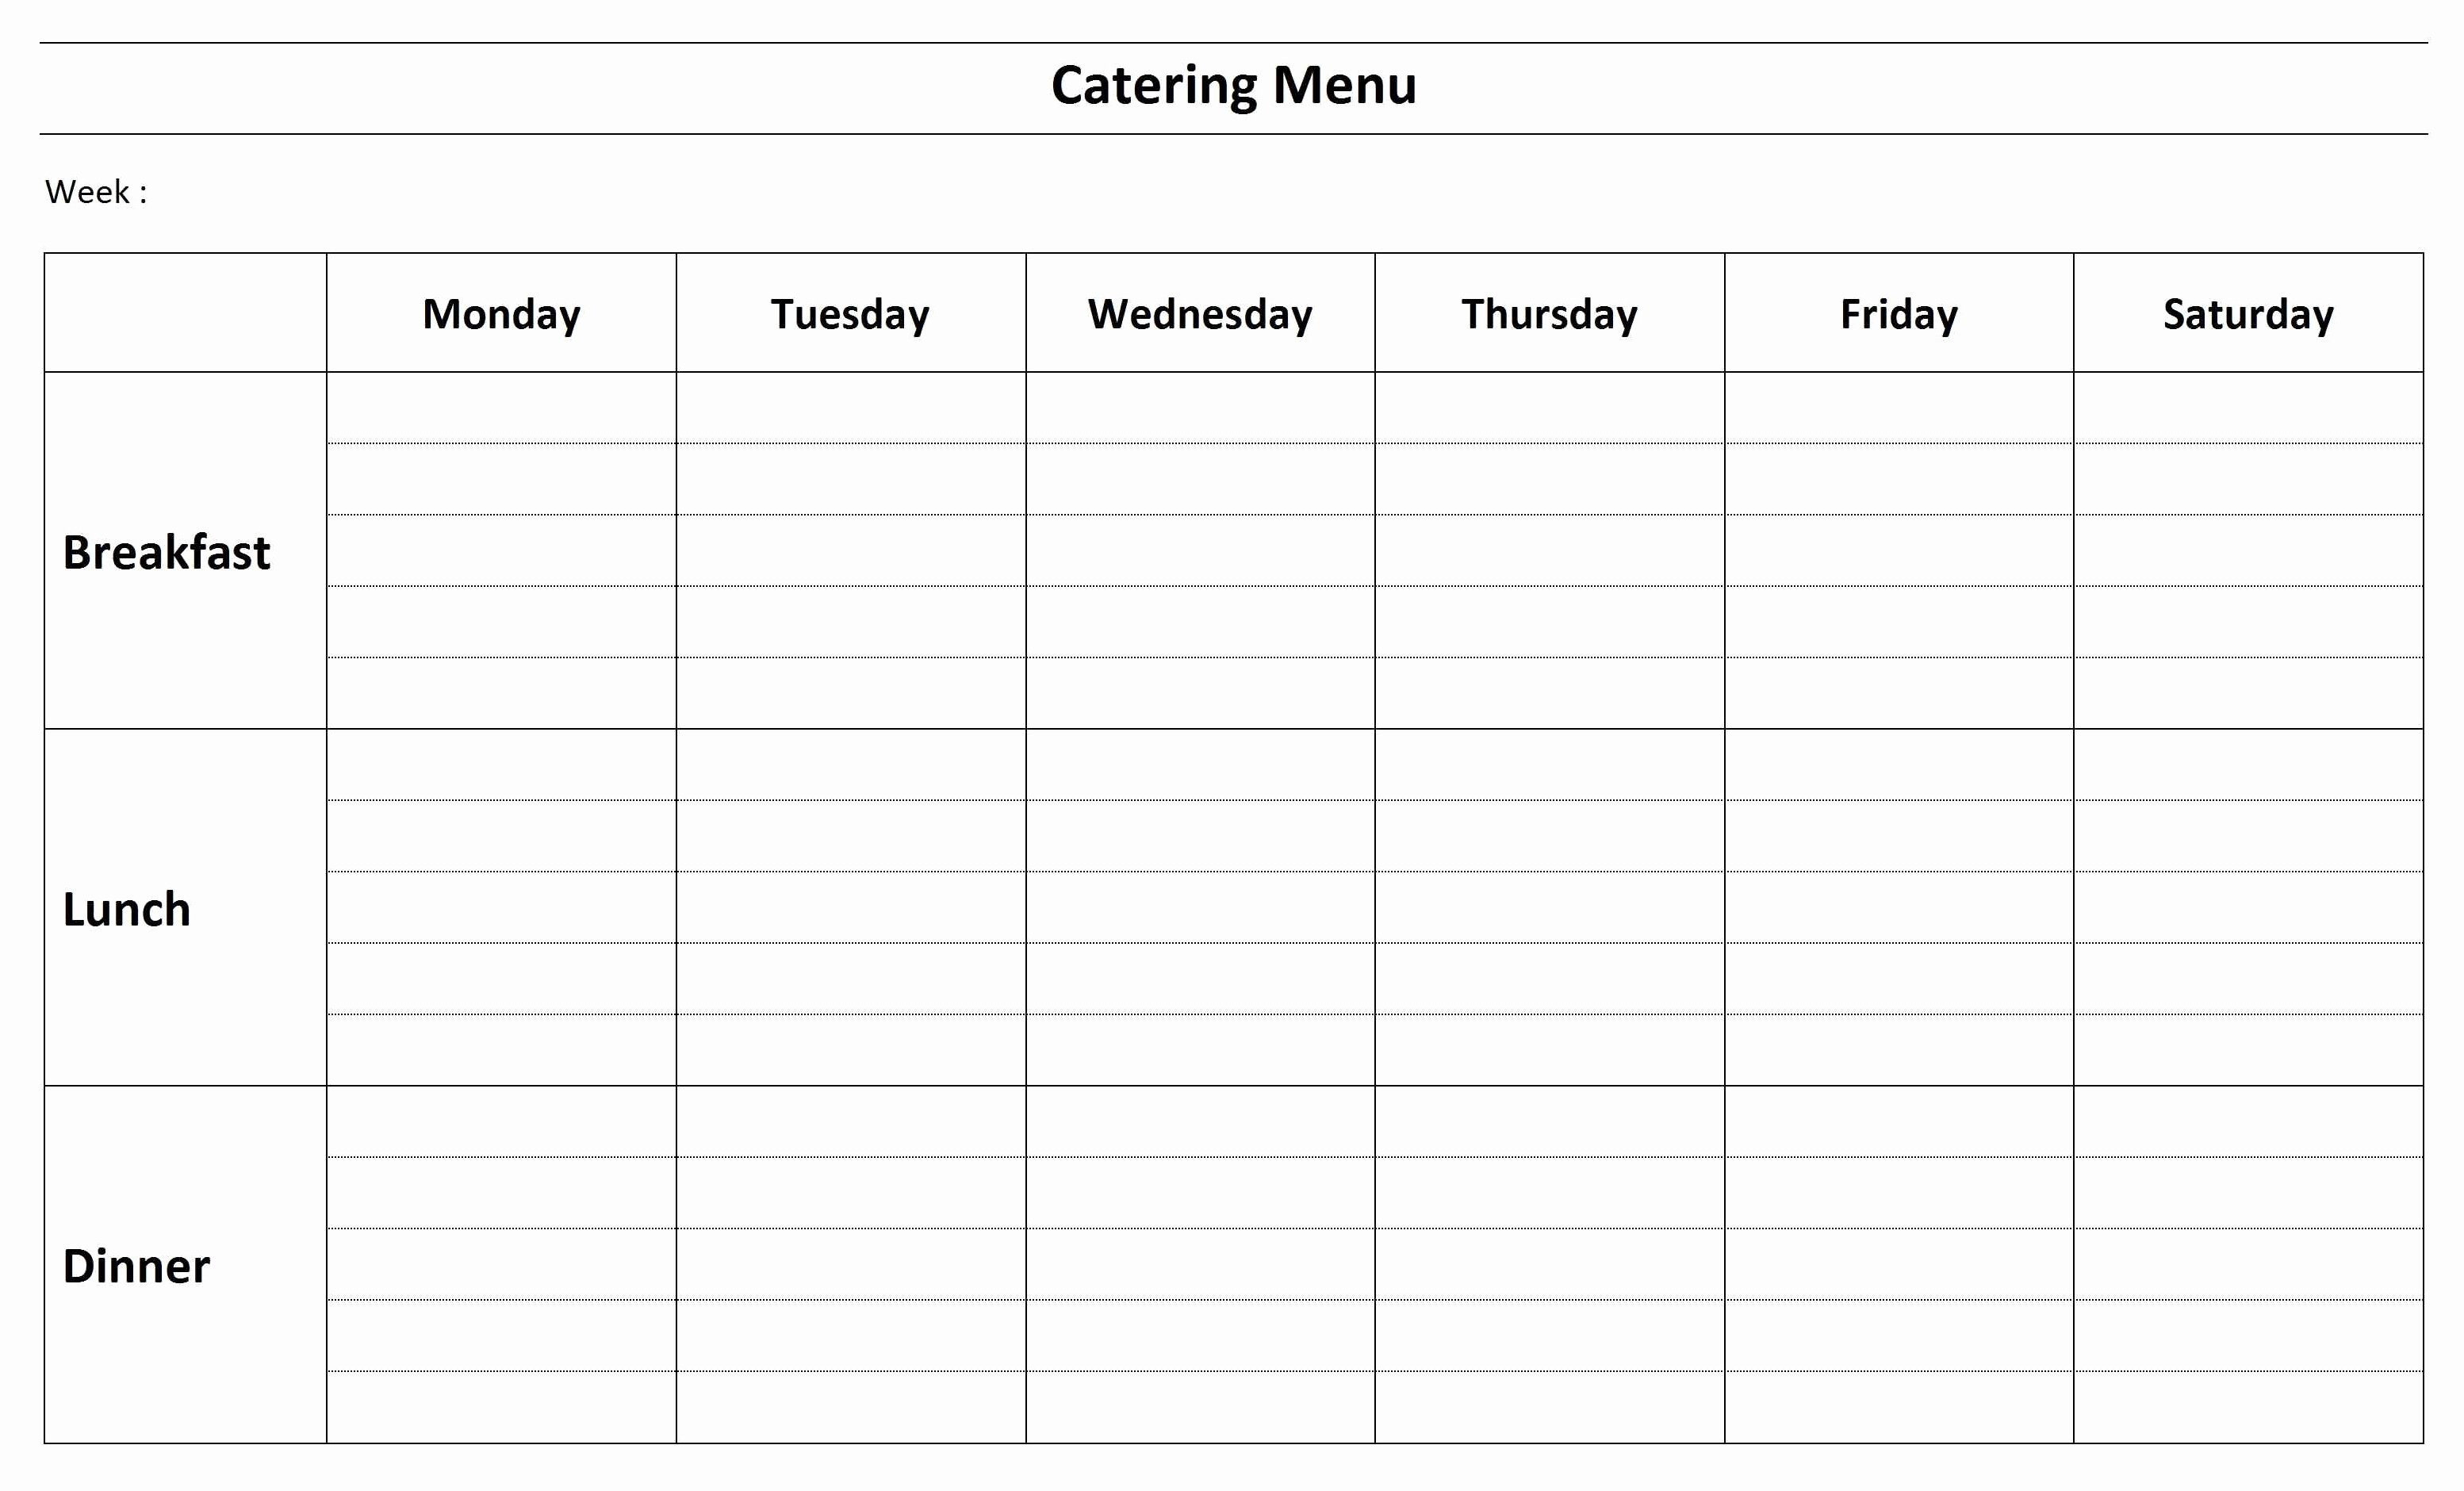 Weekly Menu Template Word Inspirational Free Catering Menu Template